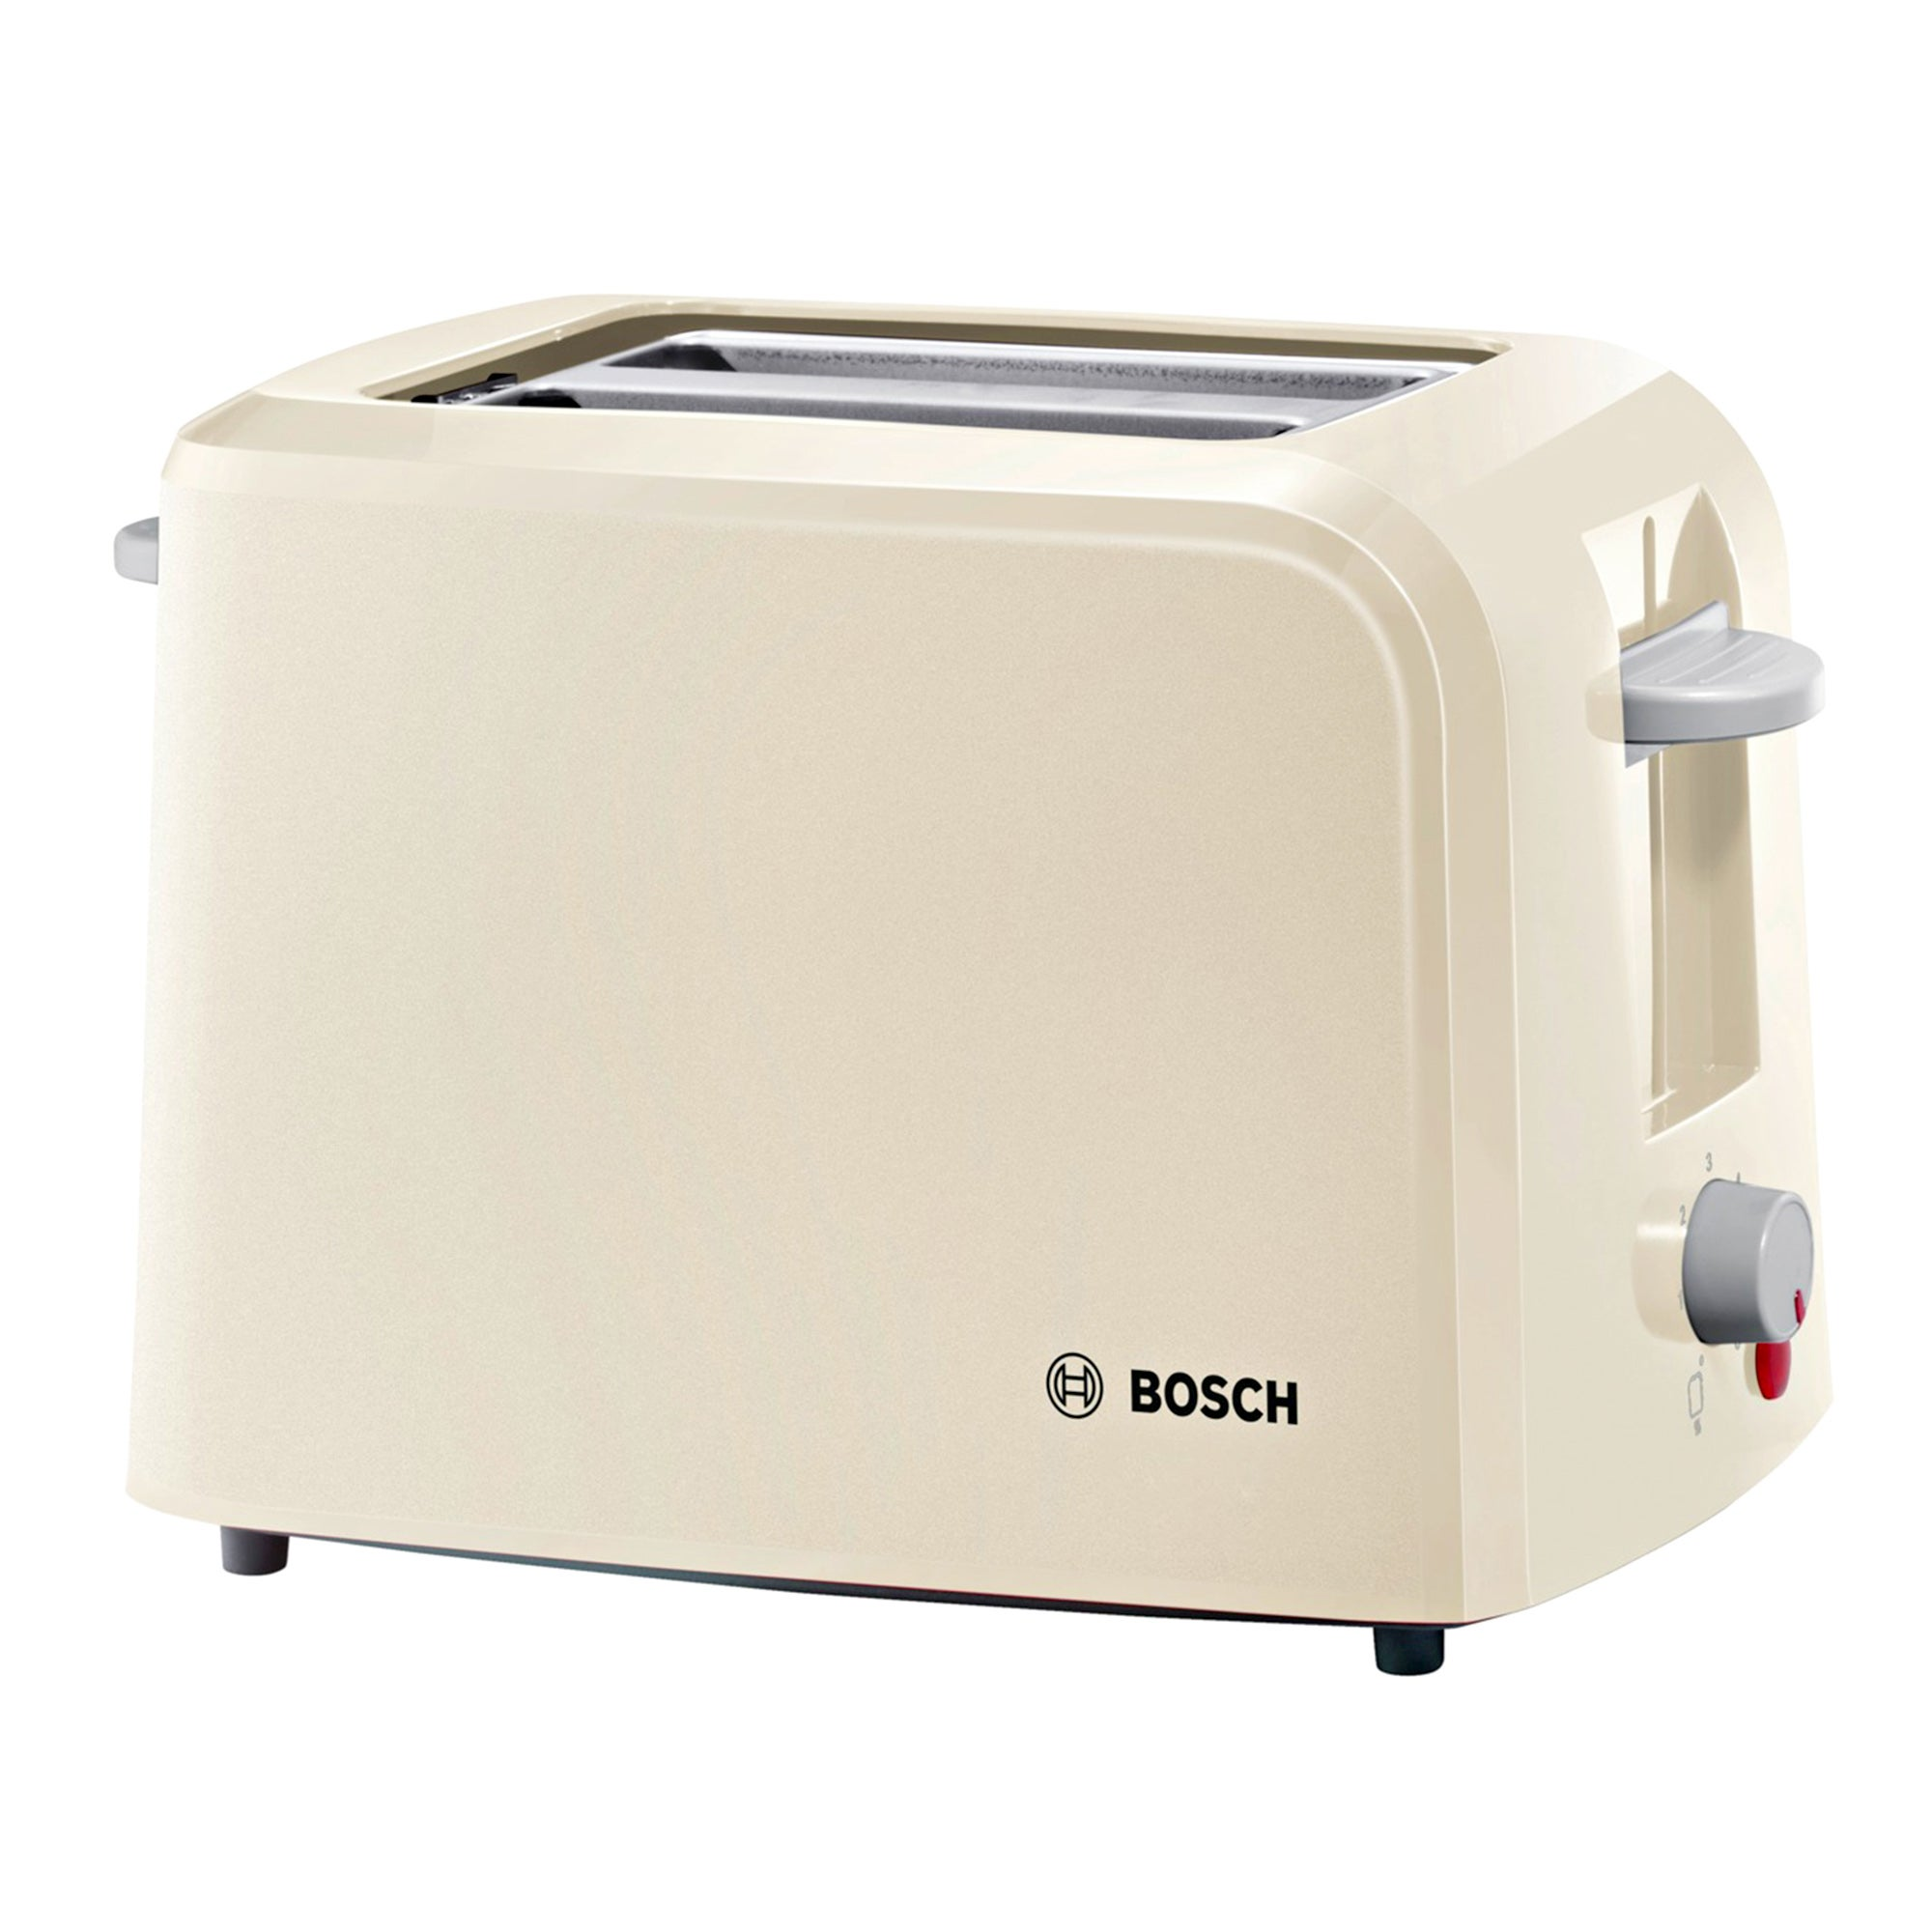 Bosch Village Toaster Cream